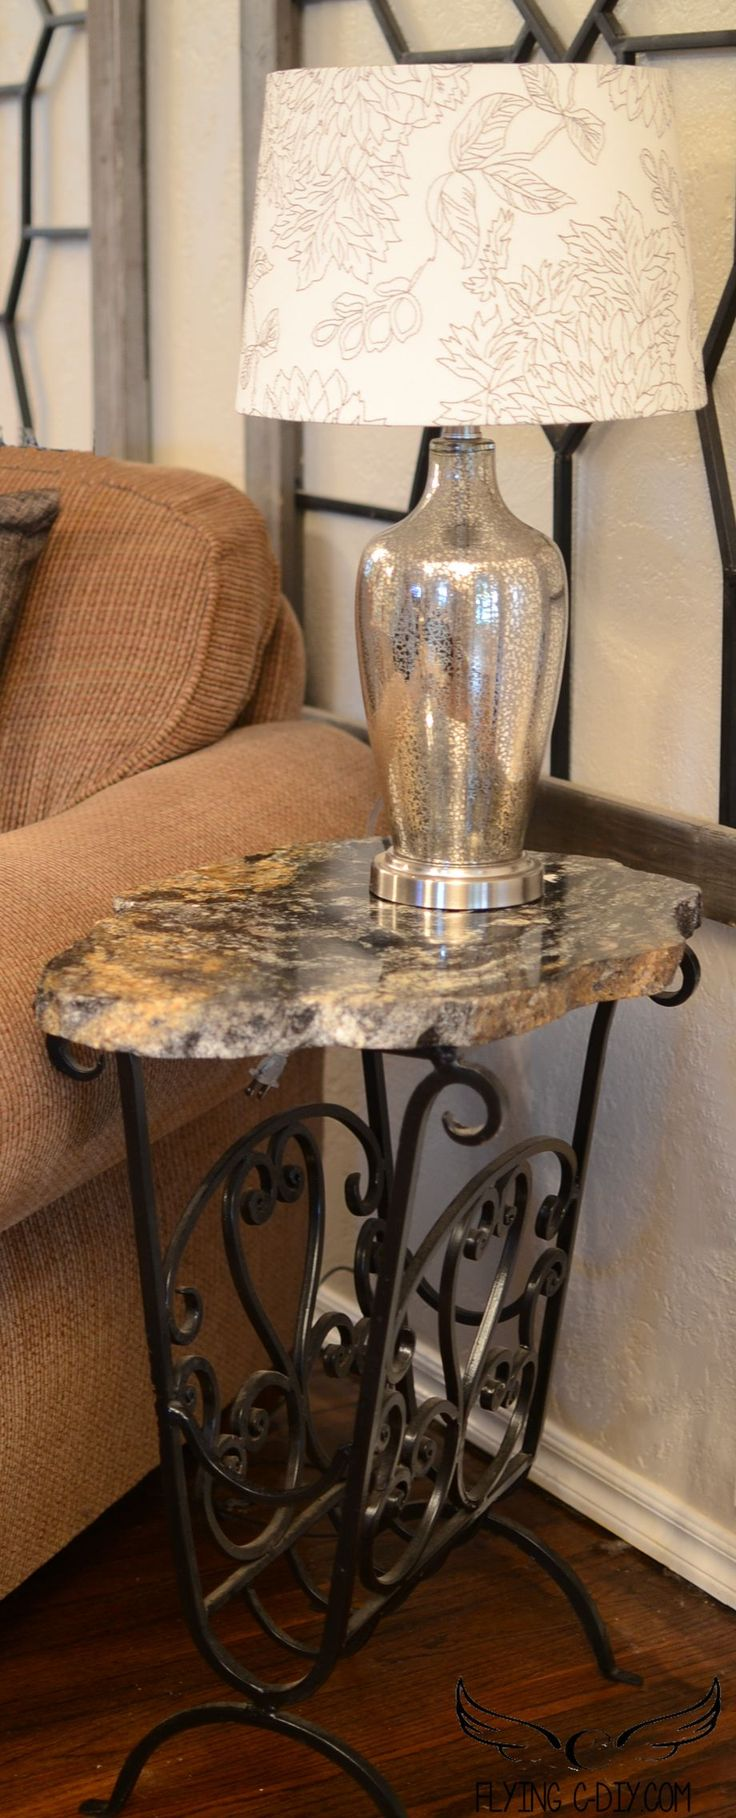 78 x 48 granite top dining table with wrought iron base and 6 - Side Table Made From Remnant Of Granite Counter Top